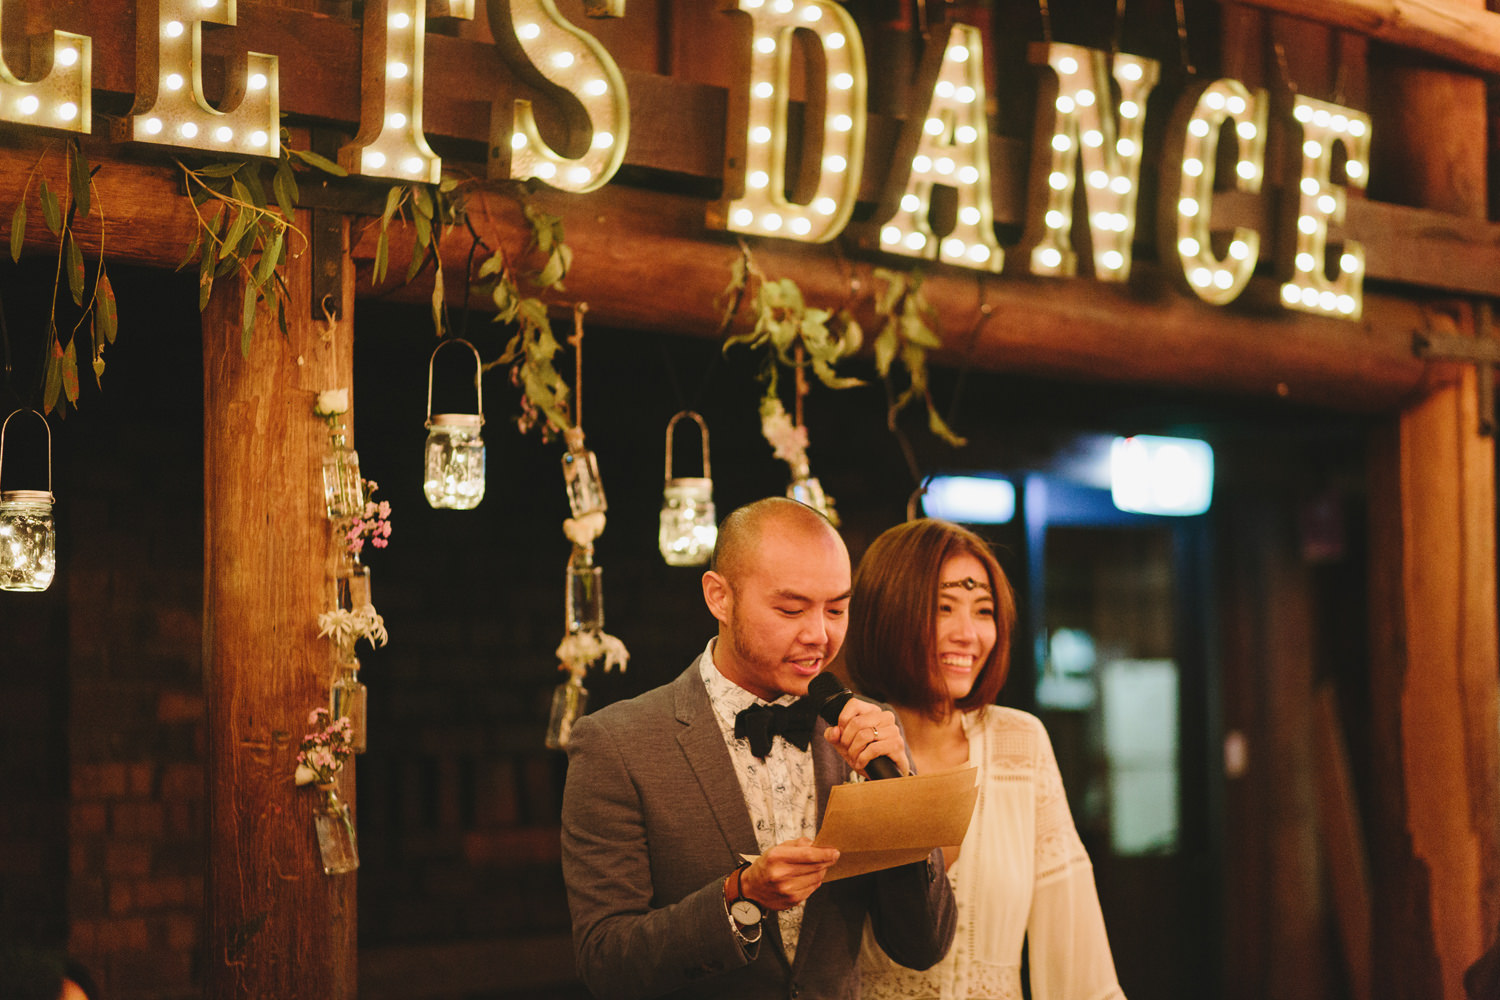 203-Barn_Wedding_Australia_Sam_Ting.jpg